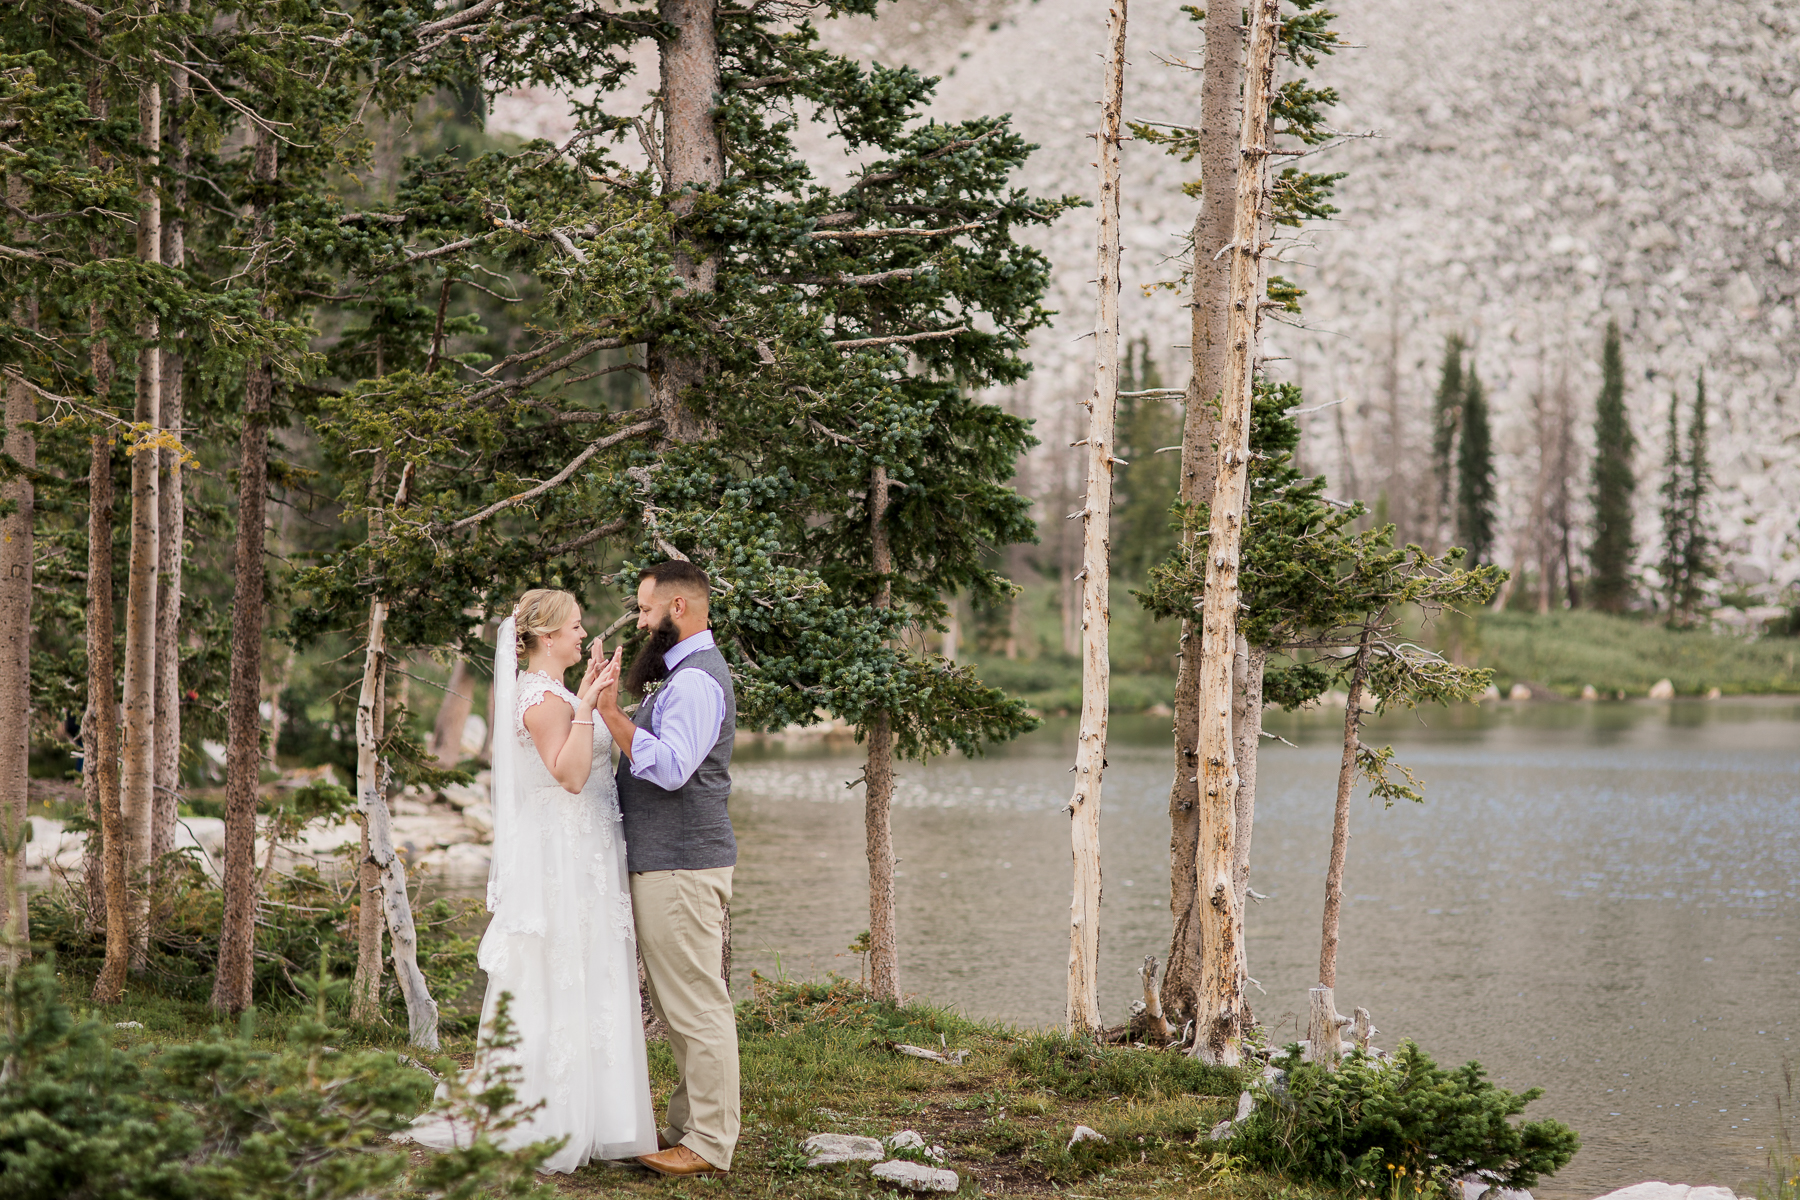 Intimate Lake Marie wedding in the Snowy Range Mountains of Medicine Bow National Forest near Centennial Wyoming. Photography by Megan Lee Photography based in Laramie Wyoming.